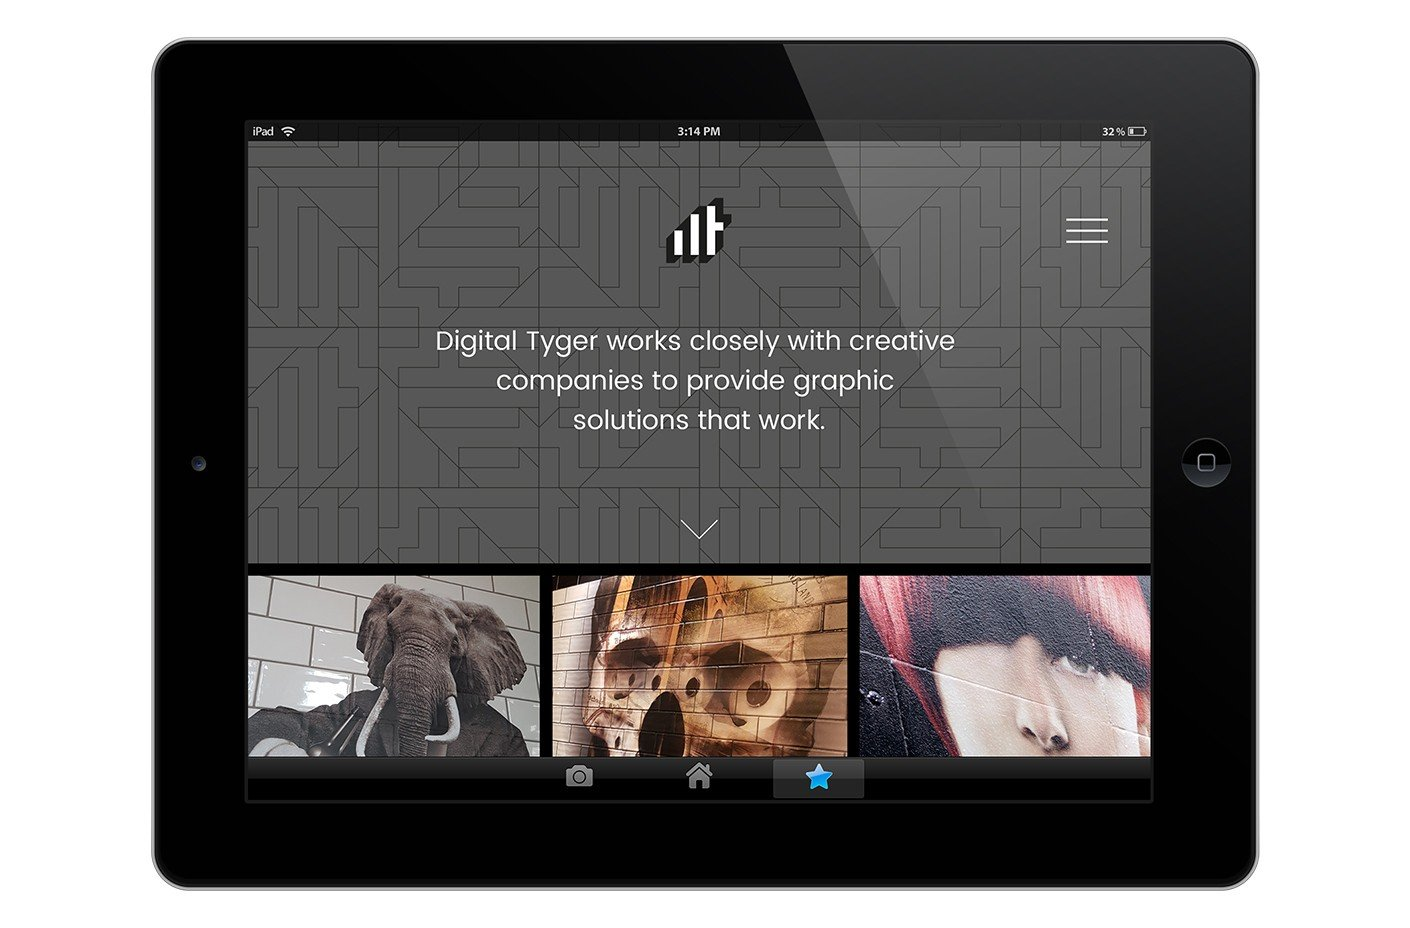 Digital Tyger website homepage design